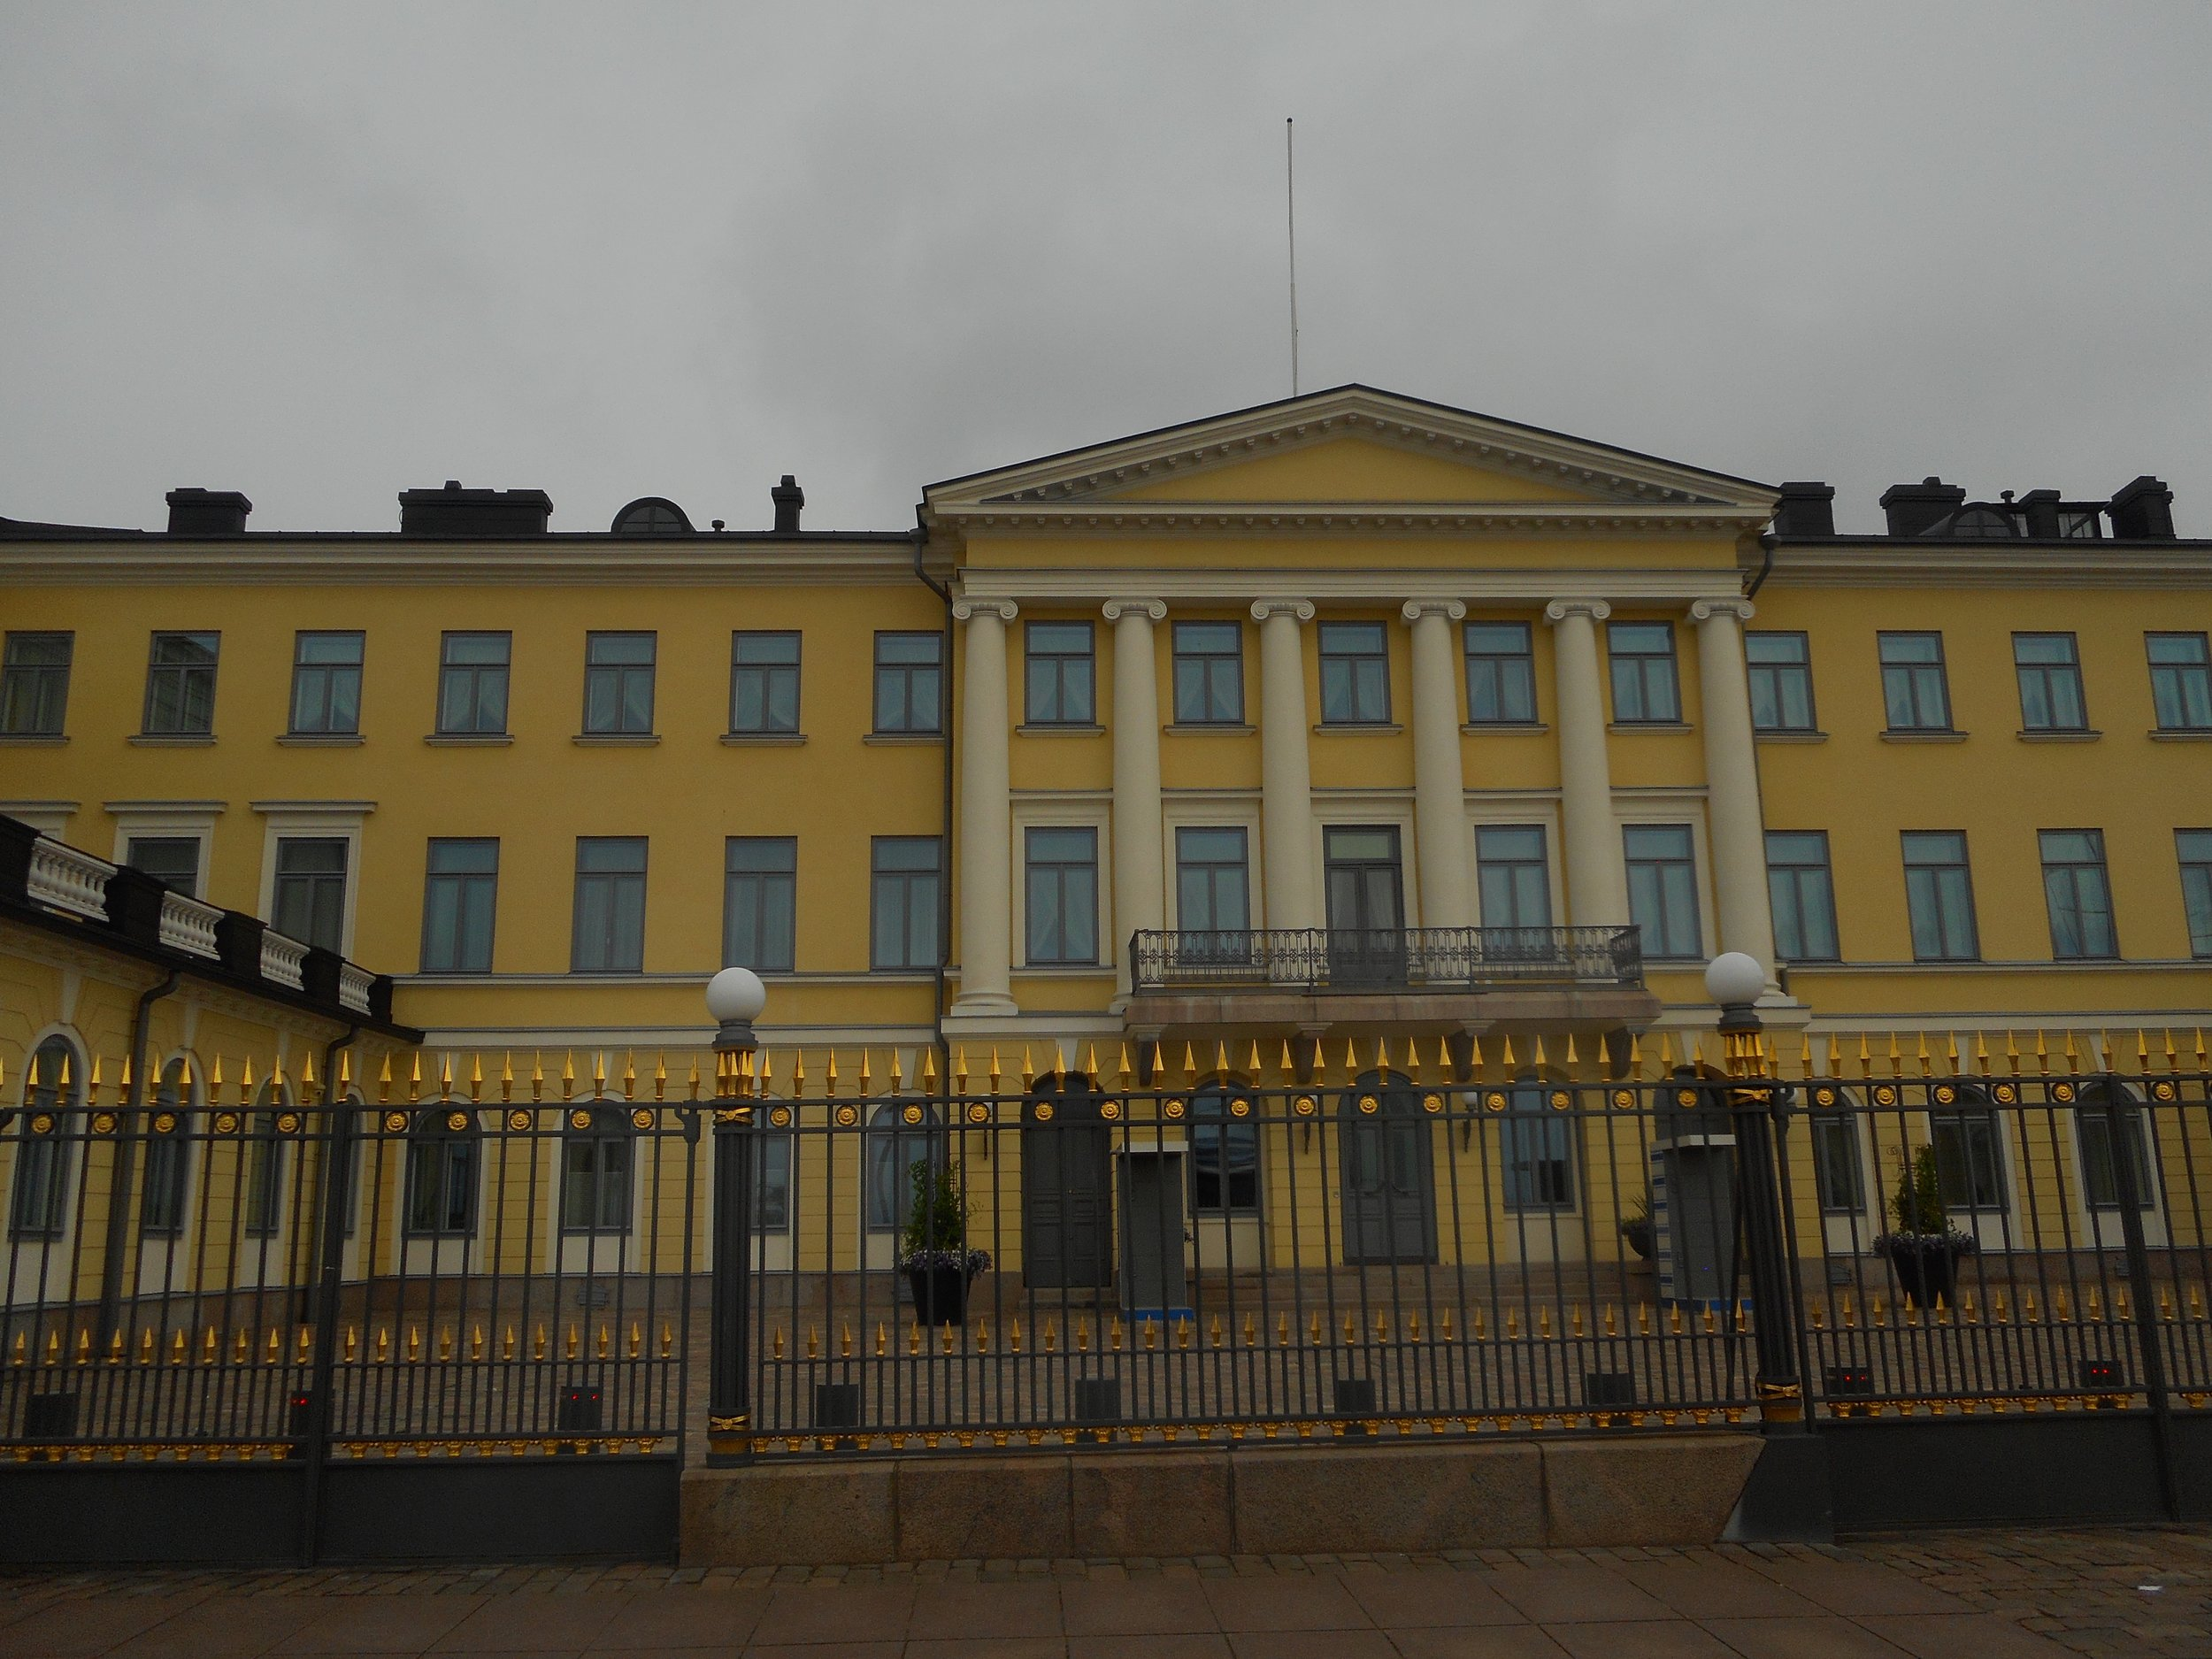 Helsinki Sightseeing trip and president palace